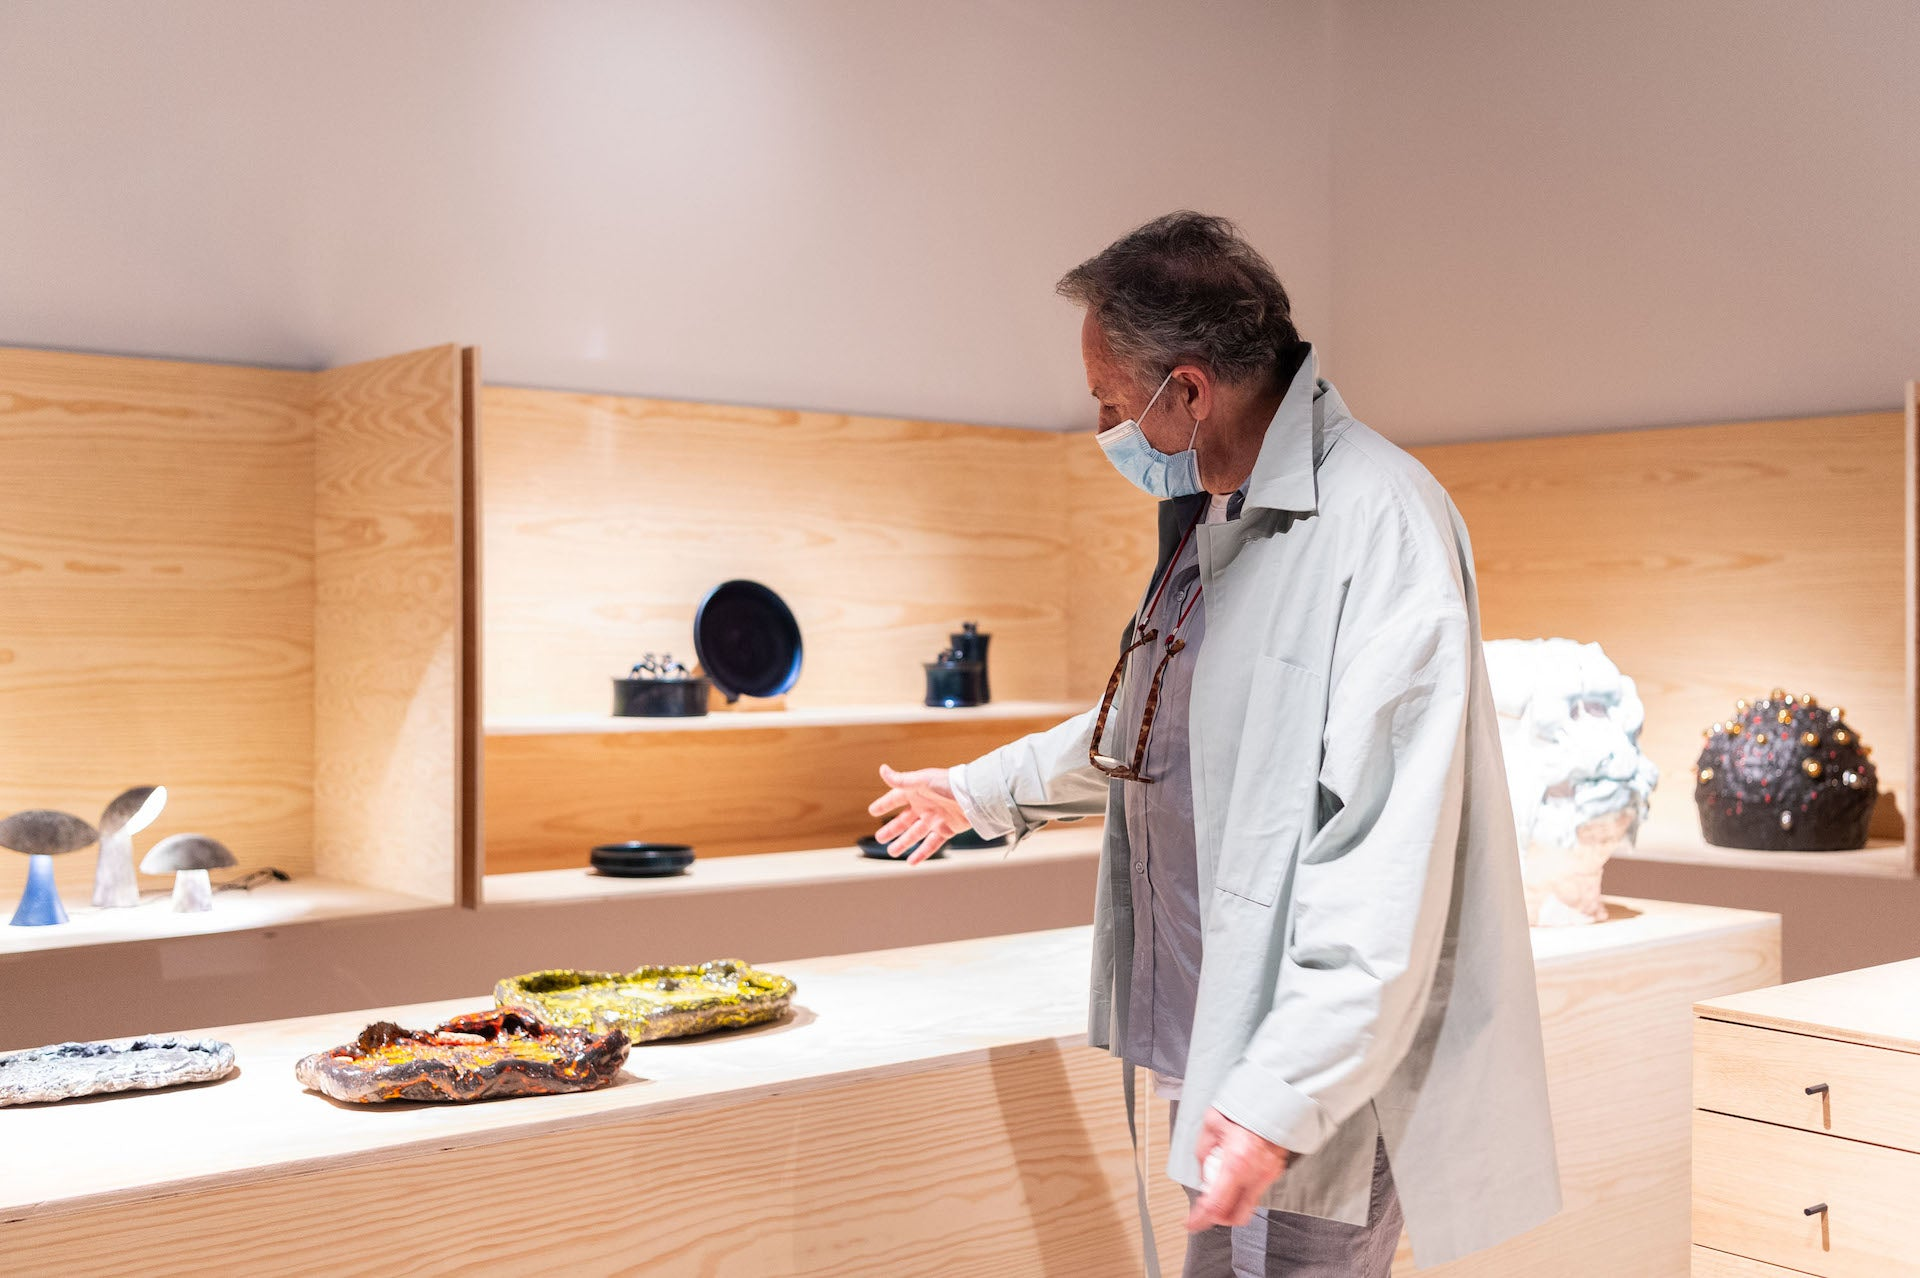 Architect and Design Miami/ Basel Best in Show juror Lee Mindel gives a tour of Pierre Marie Giraud's booth. Photo © World Red Eye